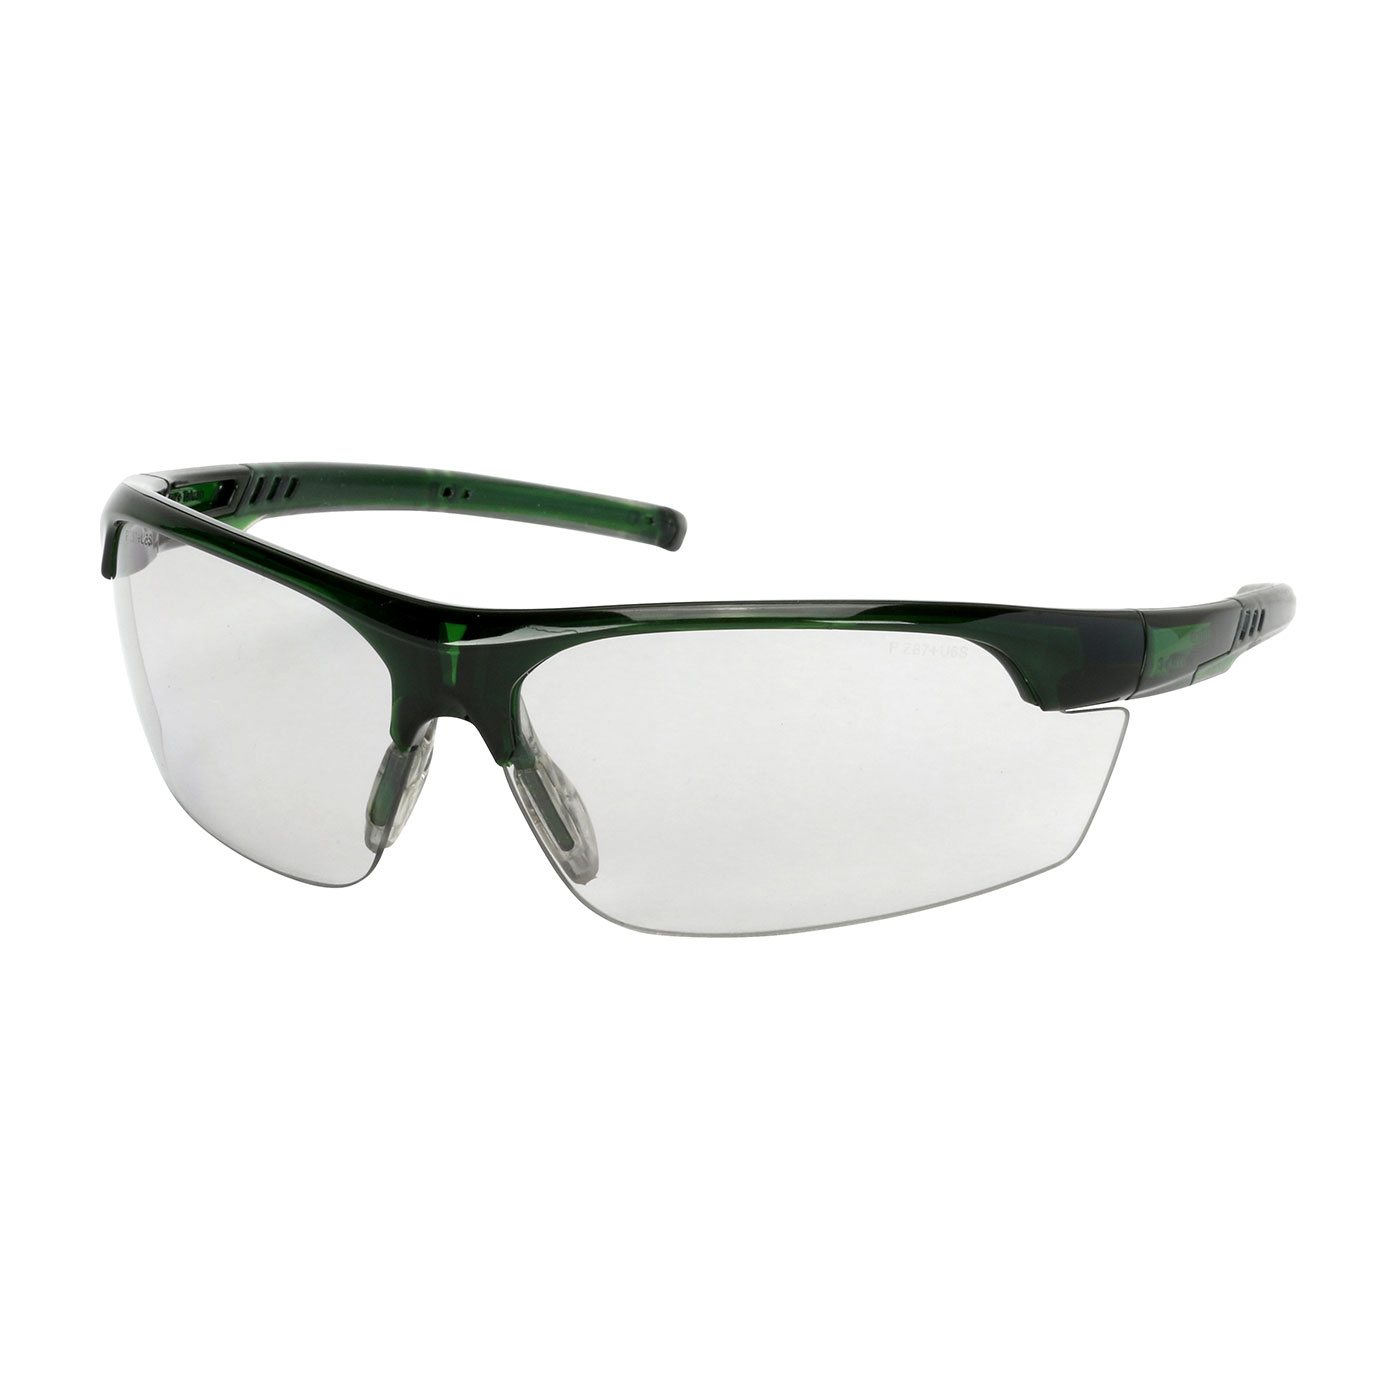 Semi-Rimless Safety Glasses with Green Frame, Light Gray Lens and FogLess® 3Sixty™ Coating, Green, OS